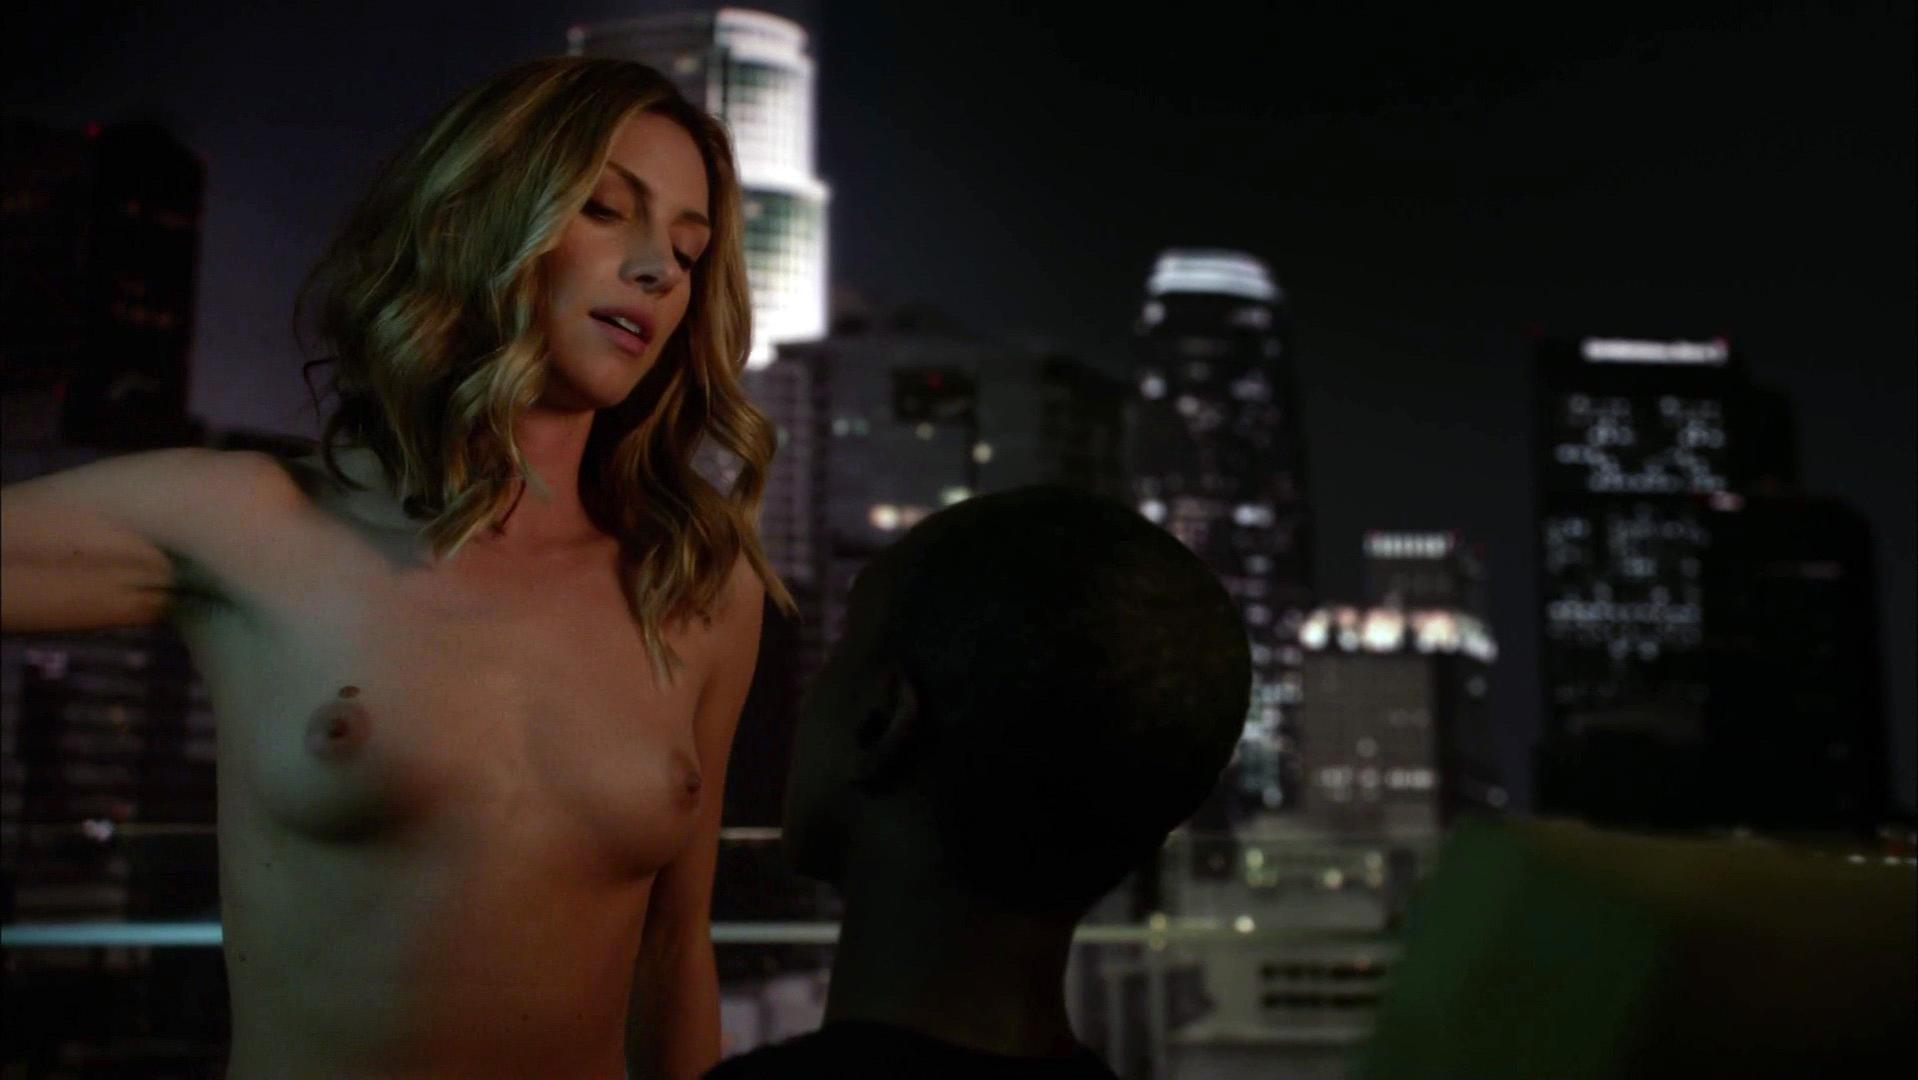 Dawn olivieri house of lies s03e08 hd nude